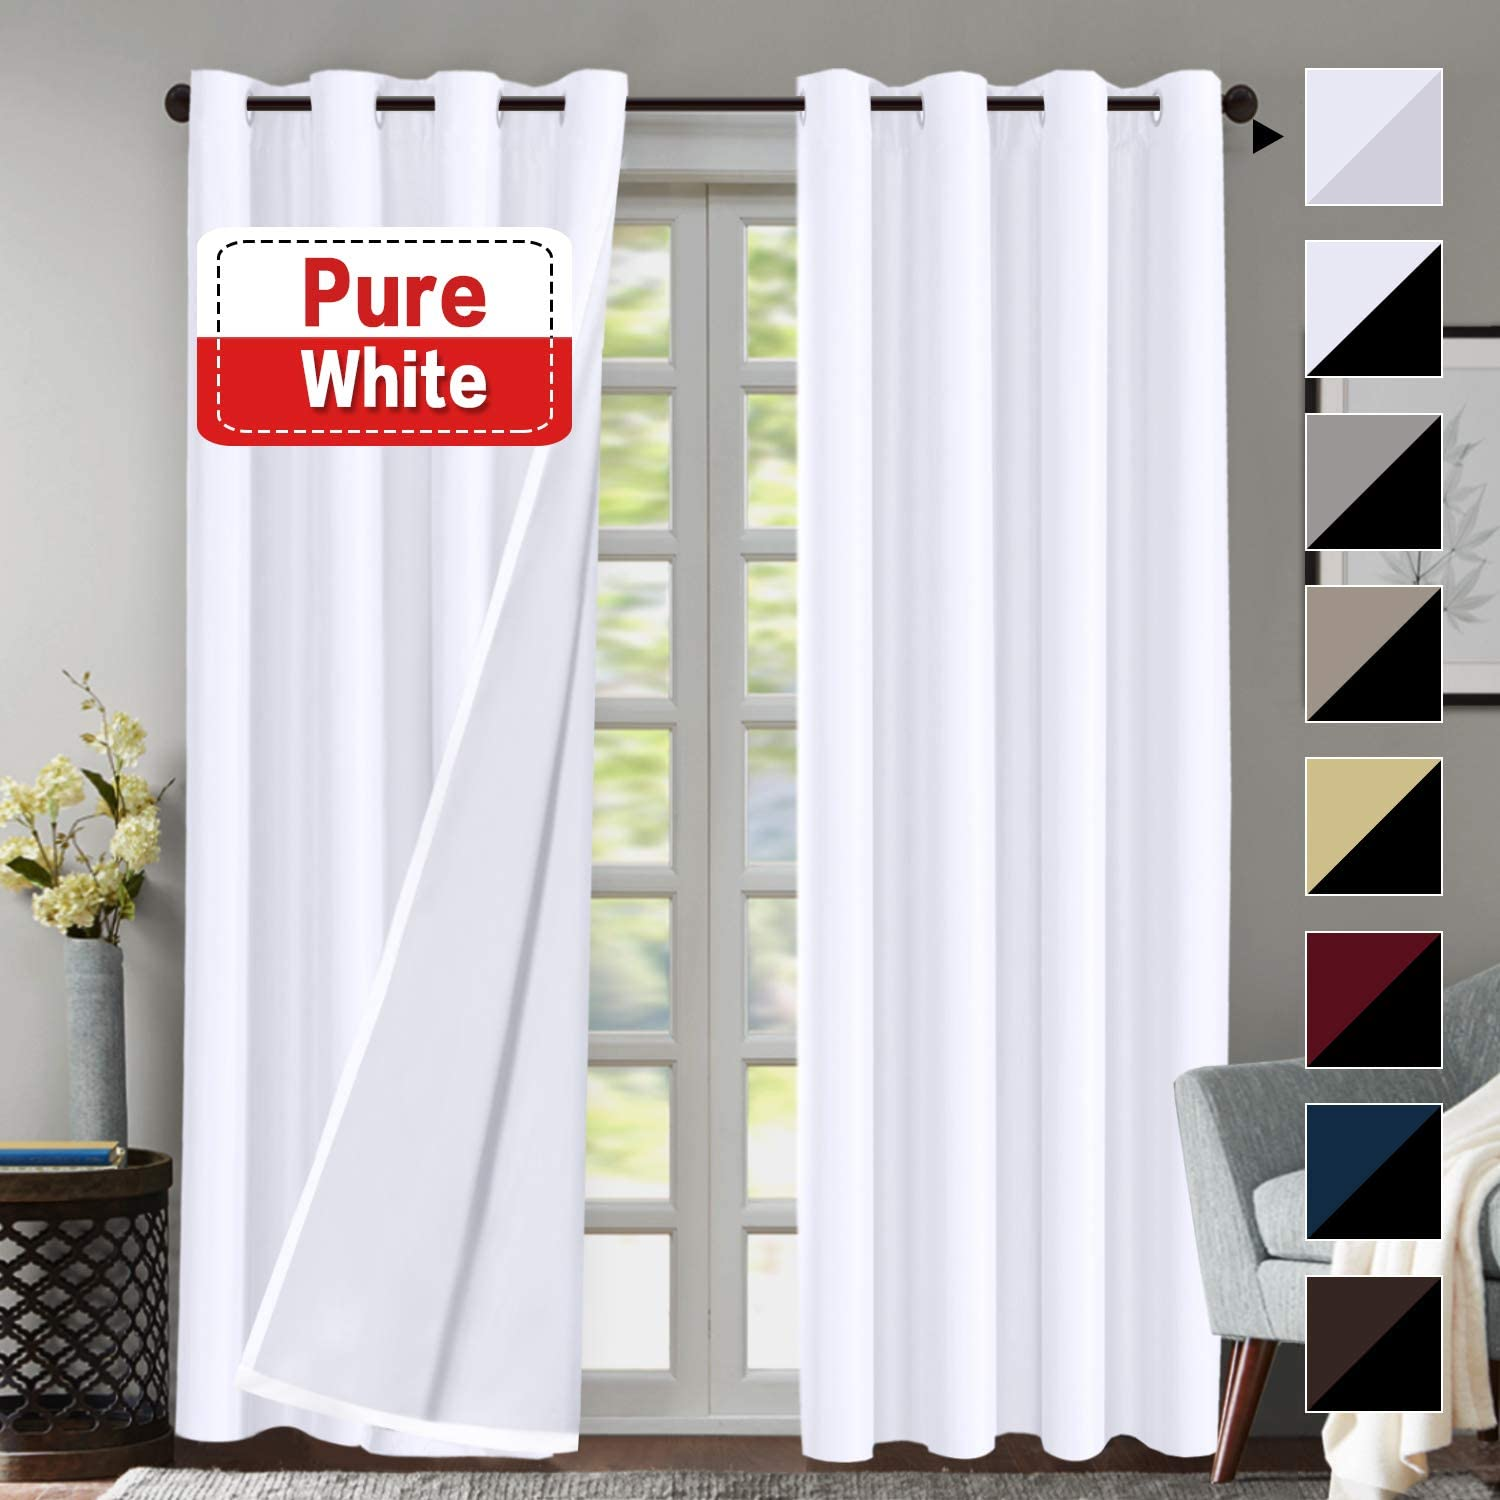 Flamingo P White Blackout (2 Layers) Curtains Elegant Lined Faux Silk with Blackout White Liner Panels Drapes Thermal Insulated Window Treatment Grommet 2 Panels, 108 Inch Length